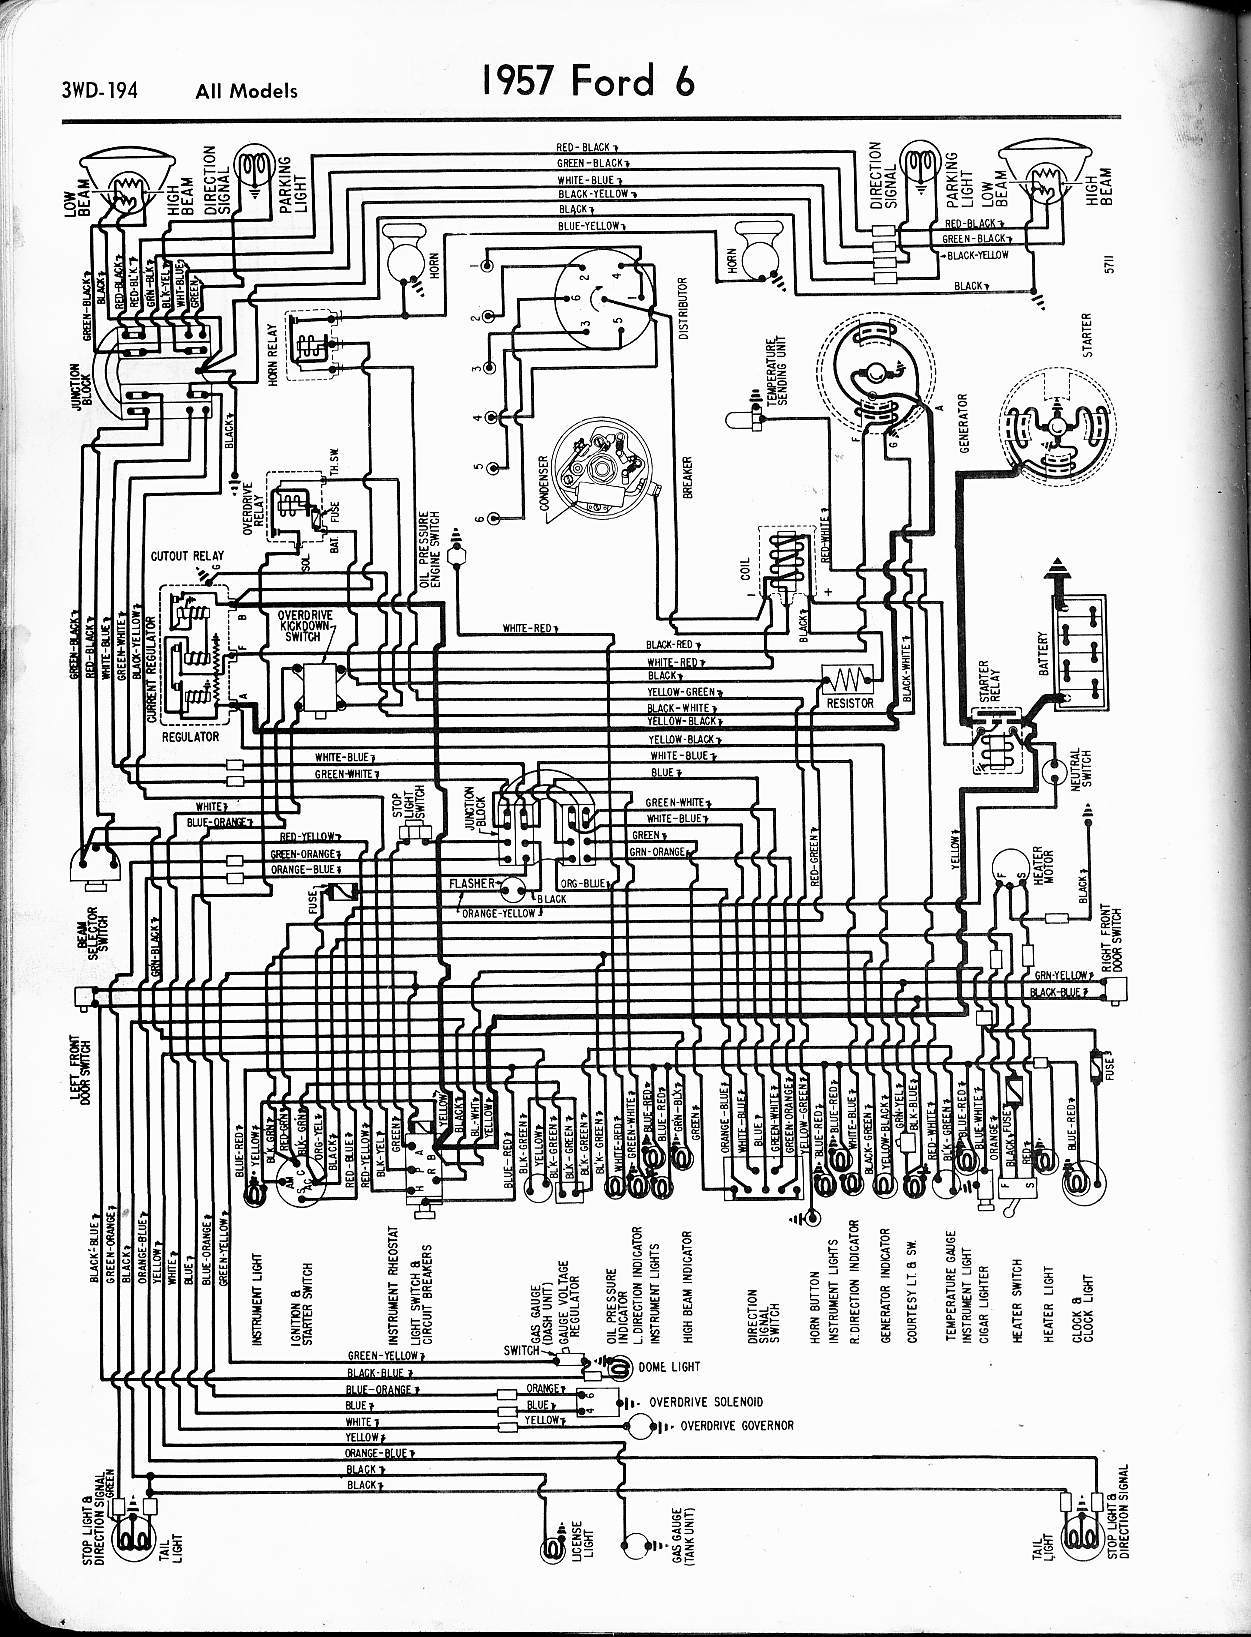 ford ranchero wiring diagrams 1966 ford f100 wiring diagram schematics and wiring diagrams wiring in ignition switch 1966 f100 ford